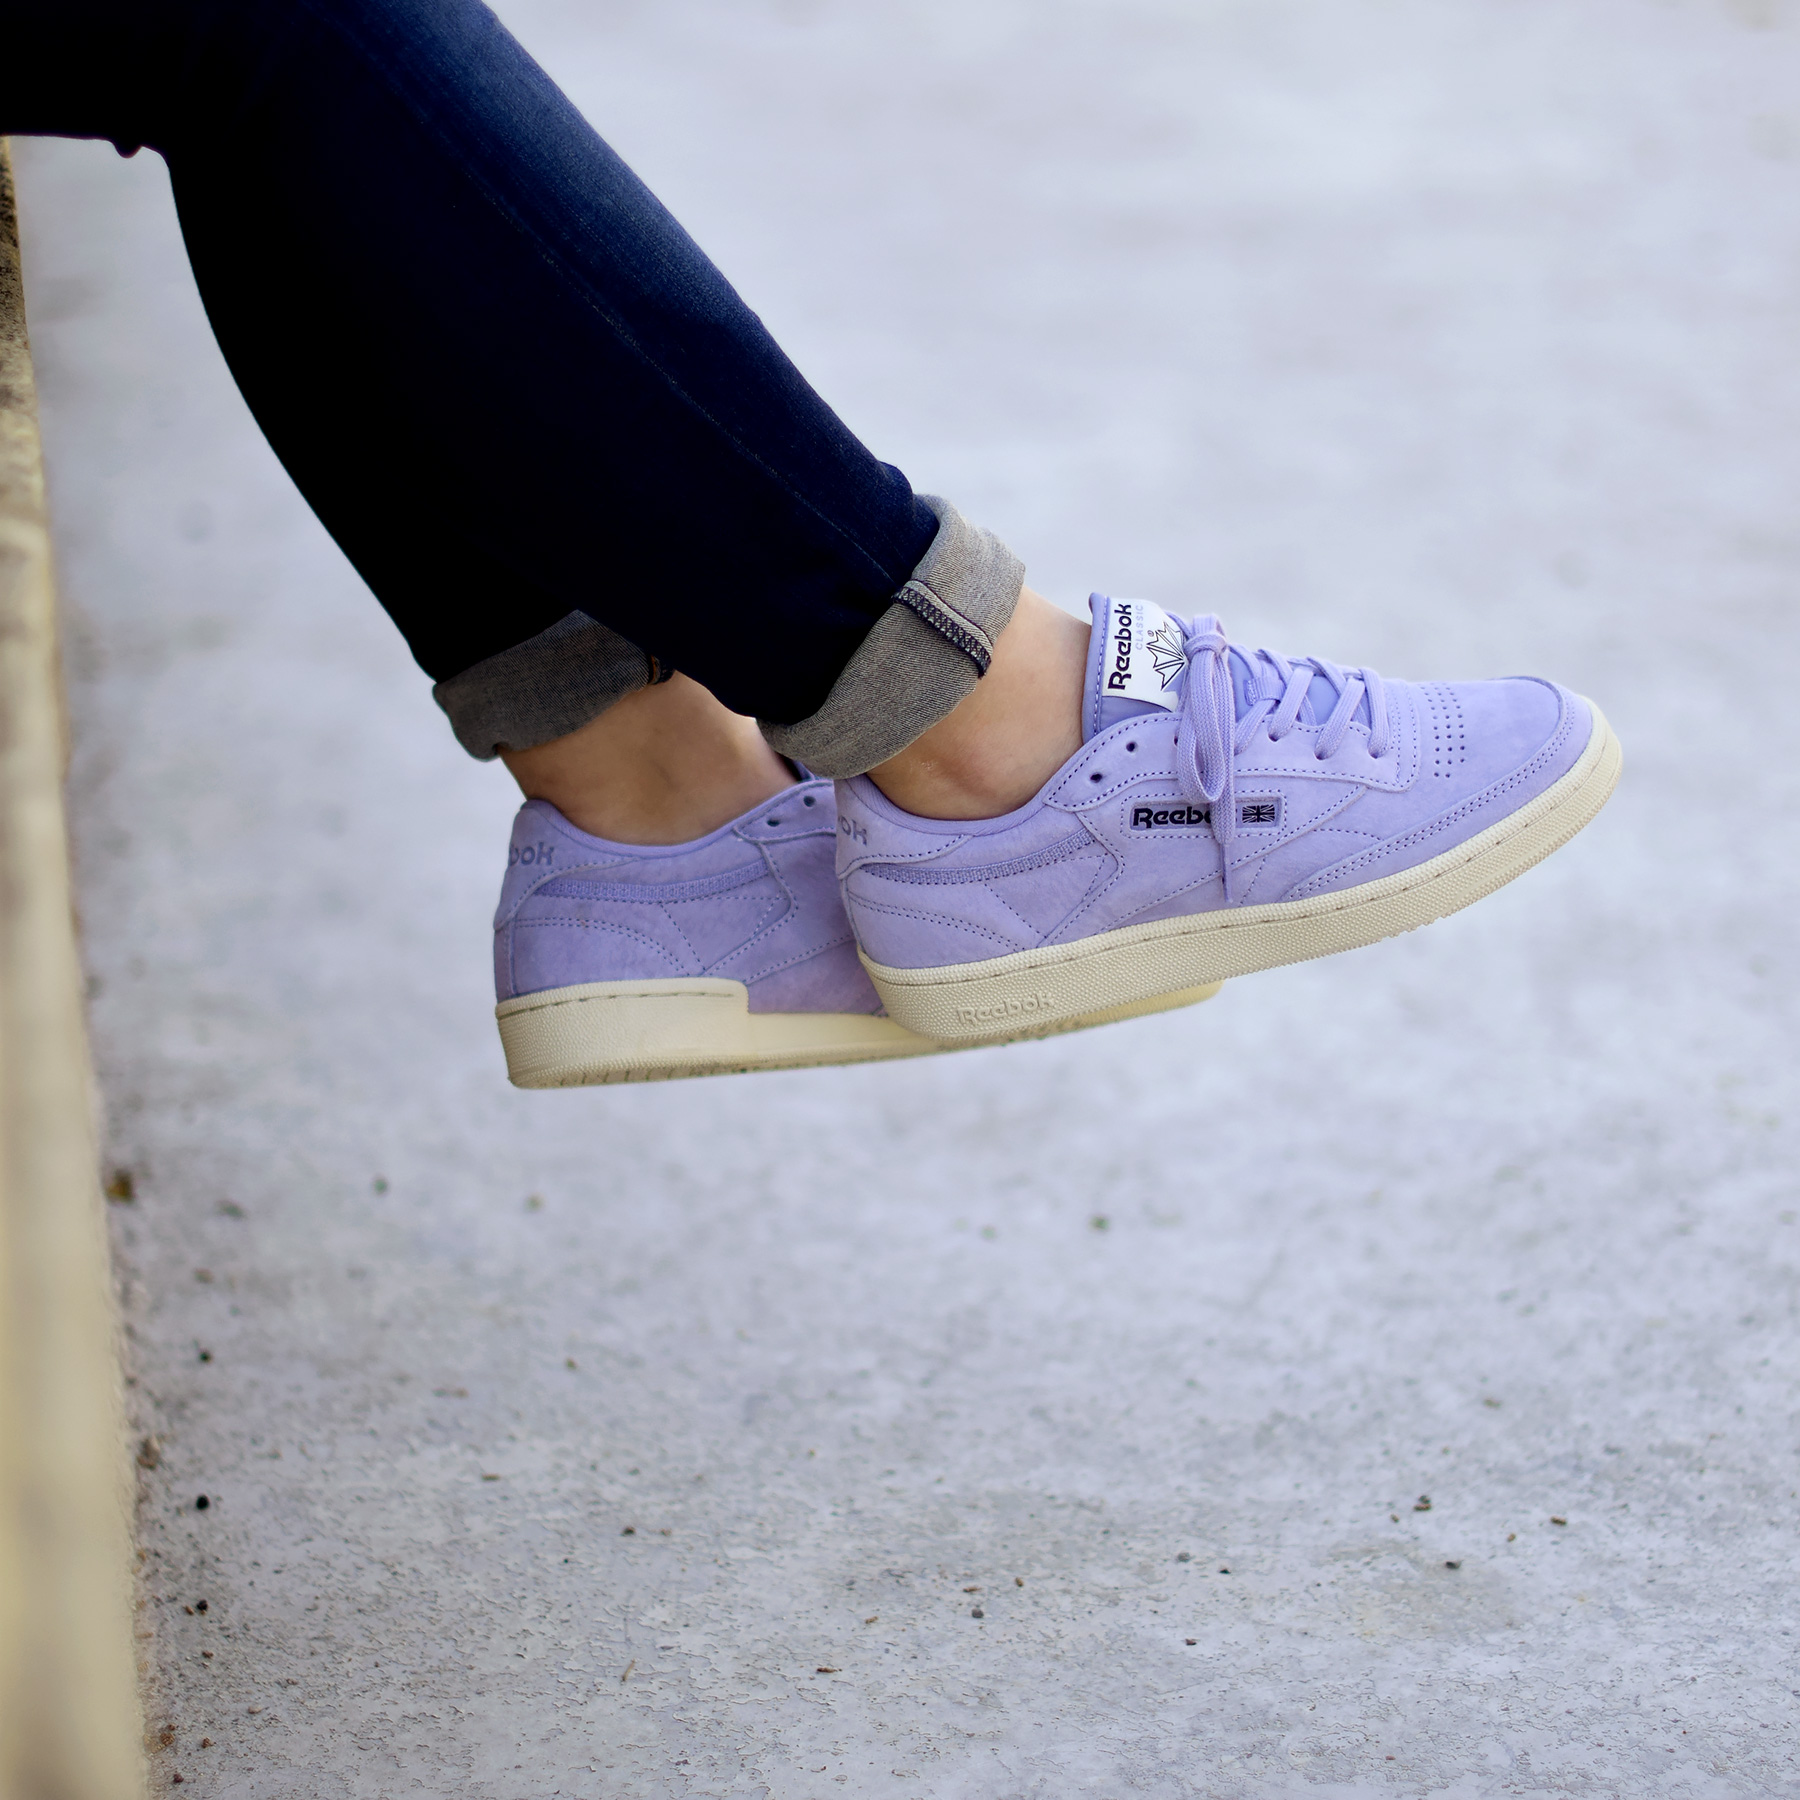 28045a6c5c1 Reebok Club C Pastels Moon Purple - Sneakers.fr